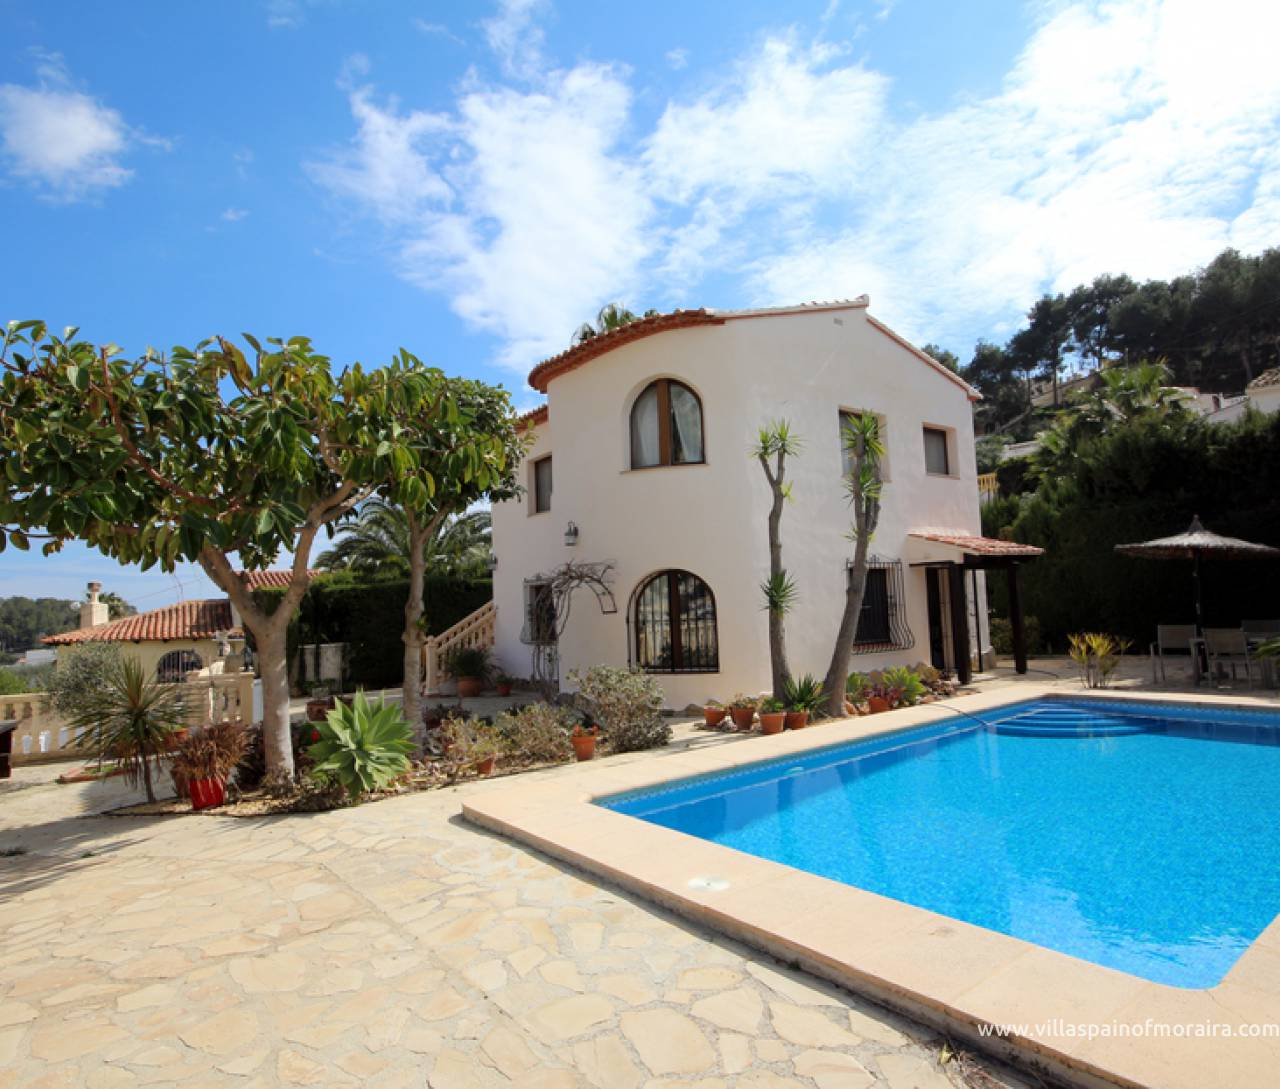 Villa for sale Montemar Benissa Costa